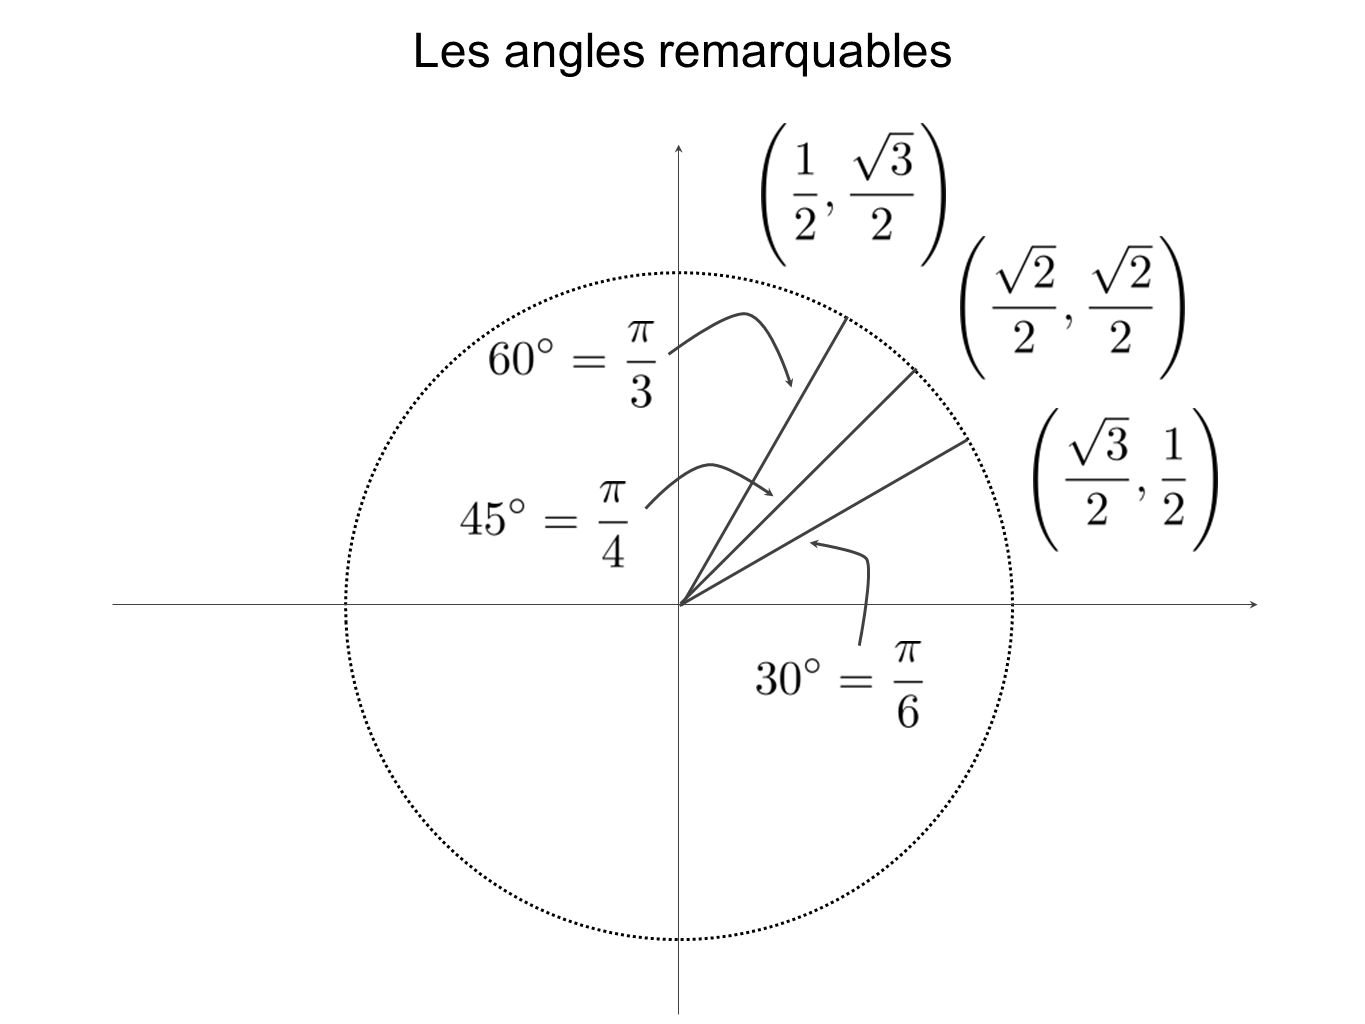 Les angles remarquables